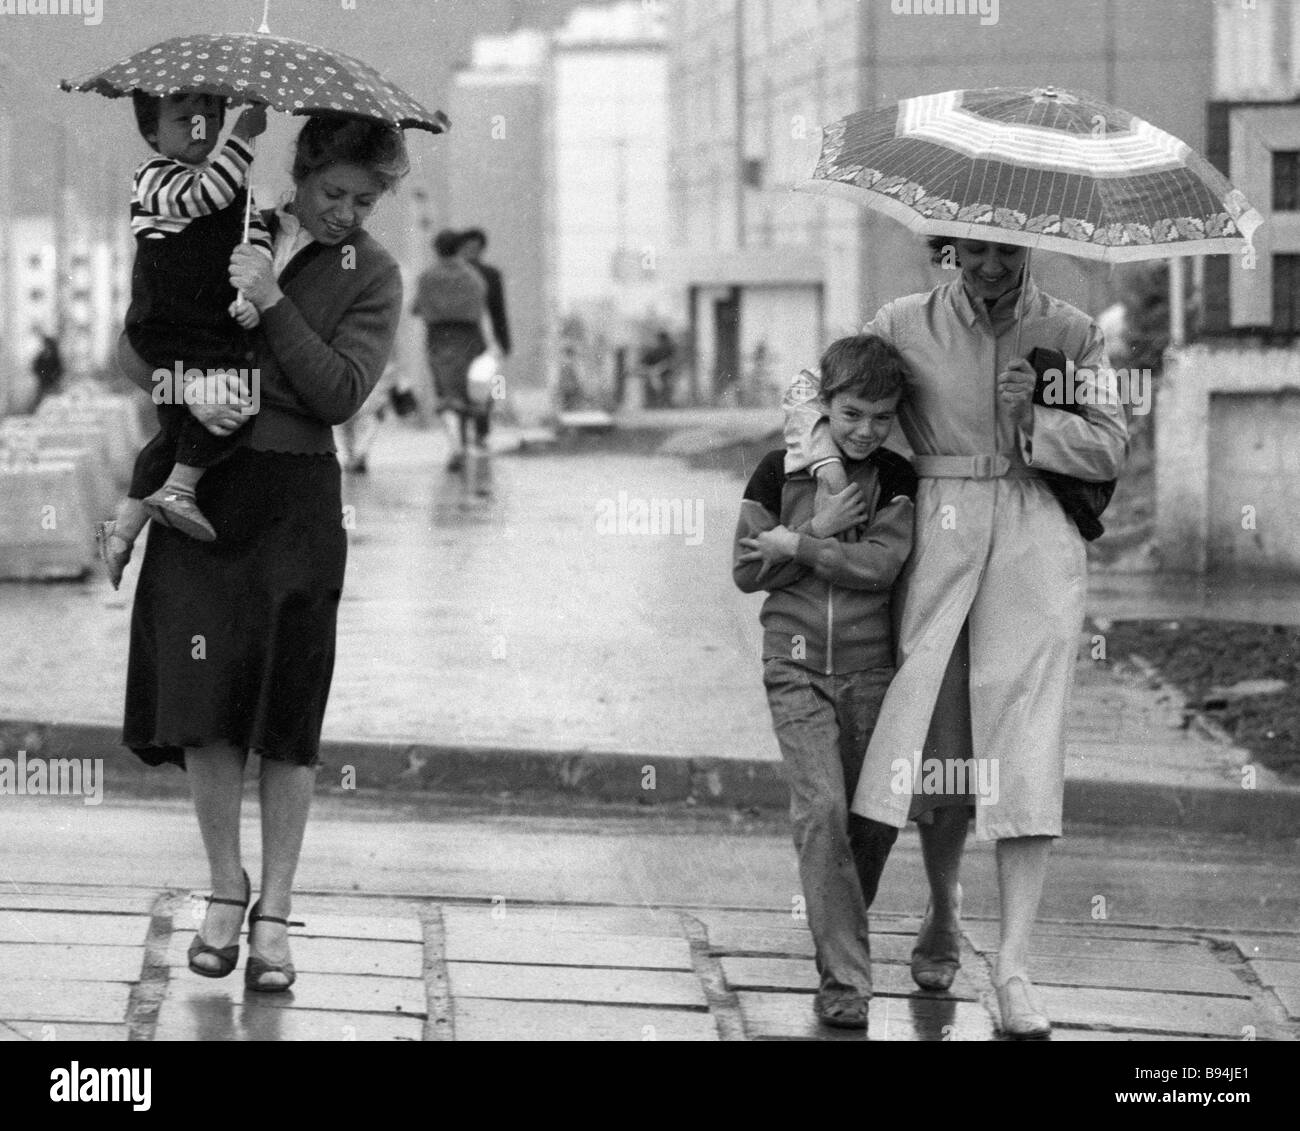 Passers by hide behind umbrellas on a rainy day - Stock Image